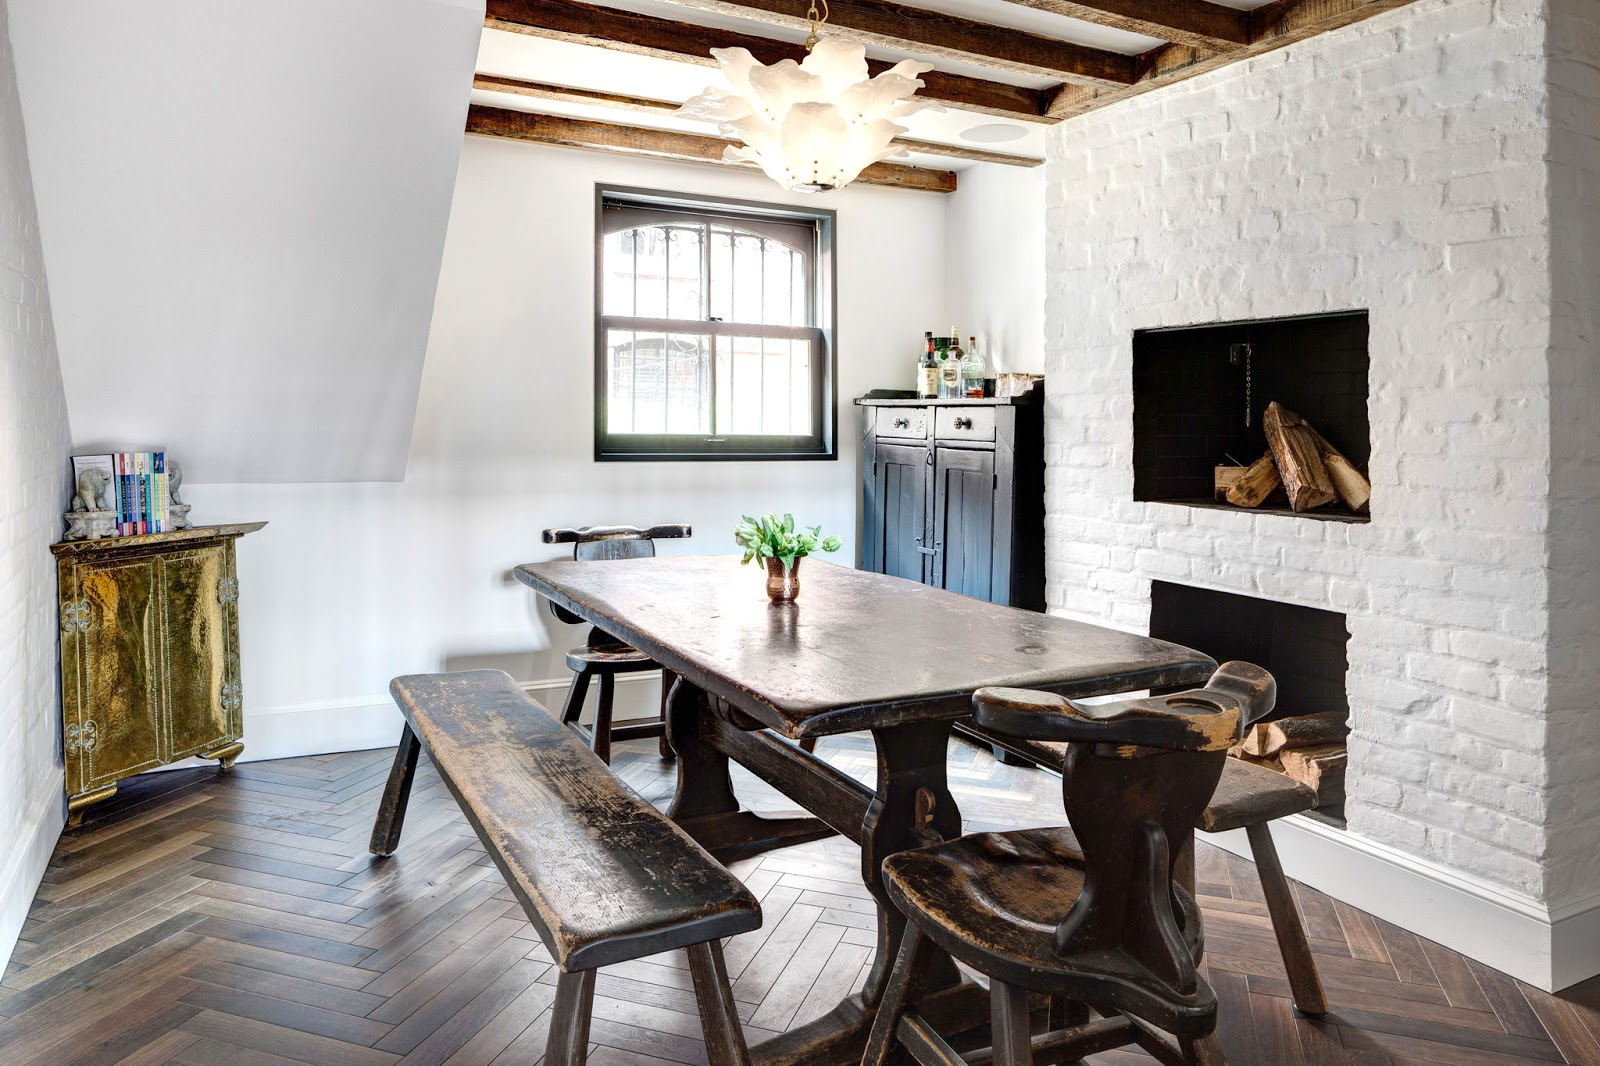 Dining Room With Reclaimed Wood Table And Benches